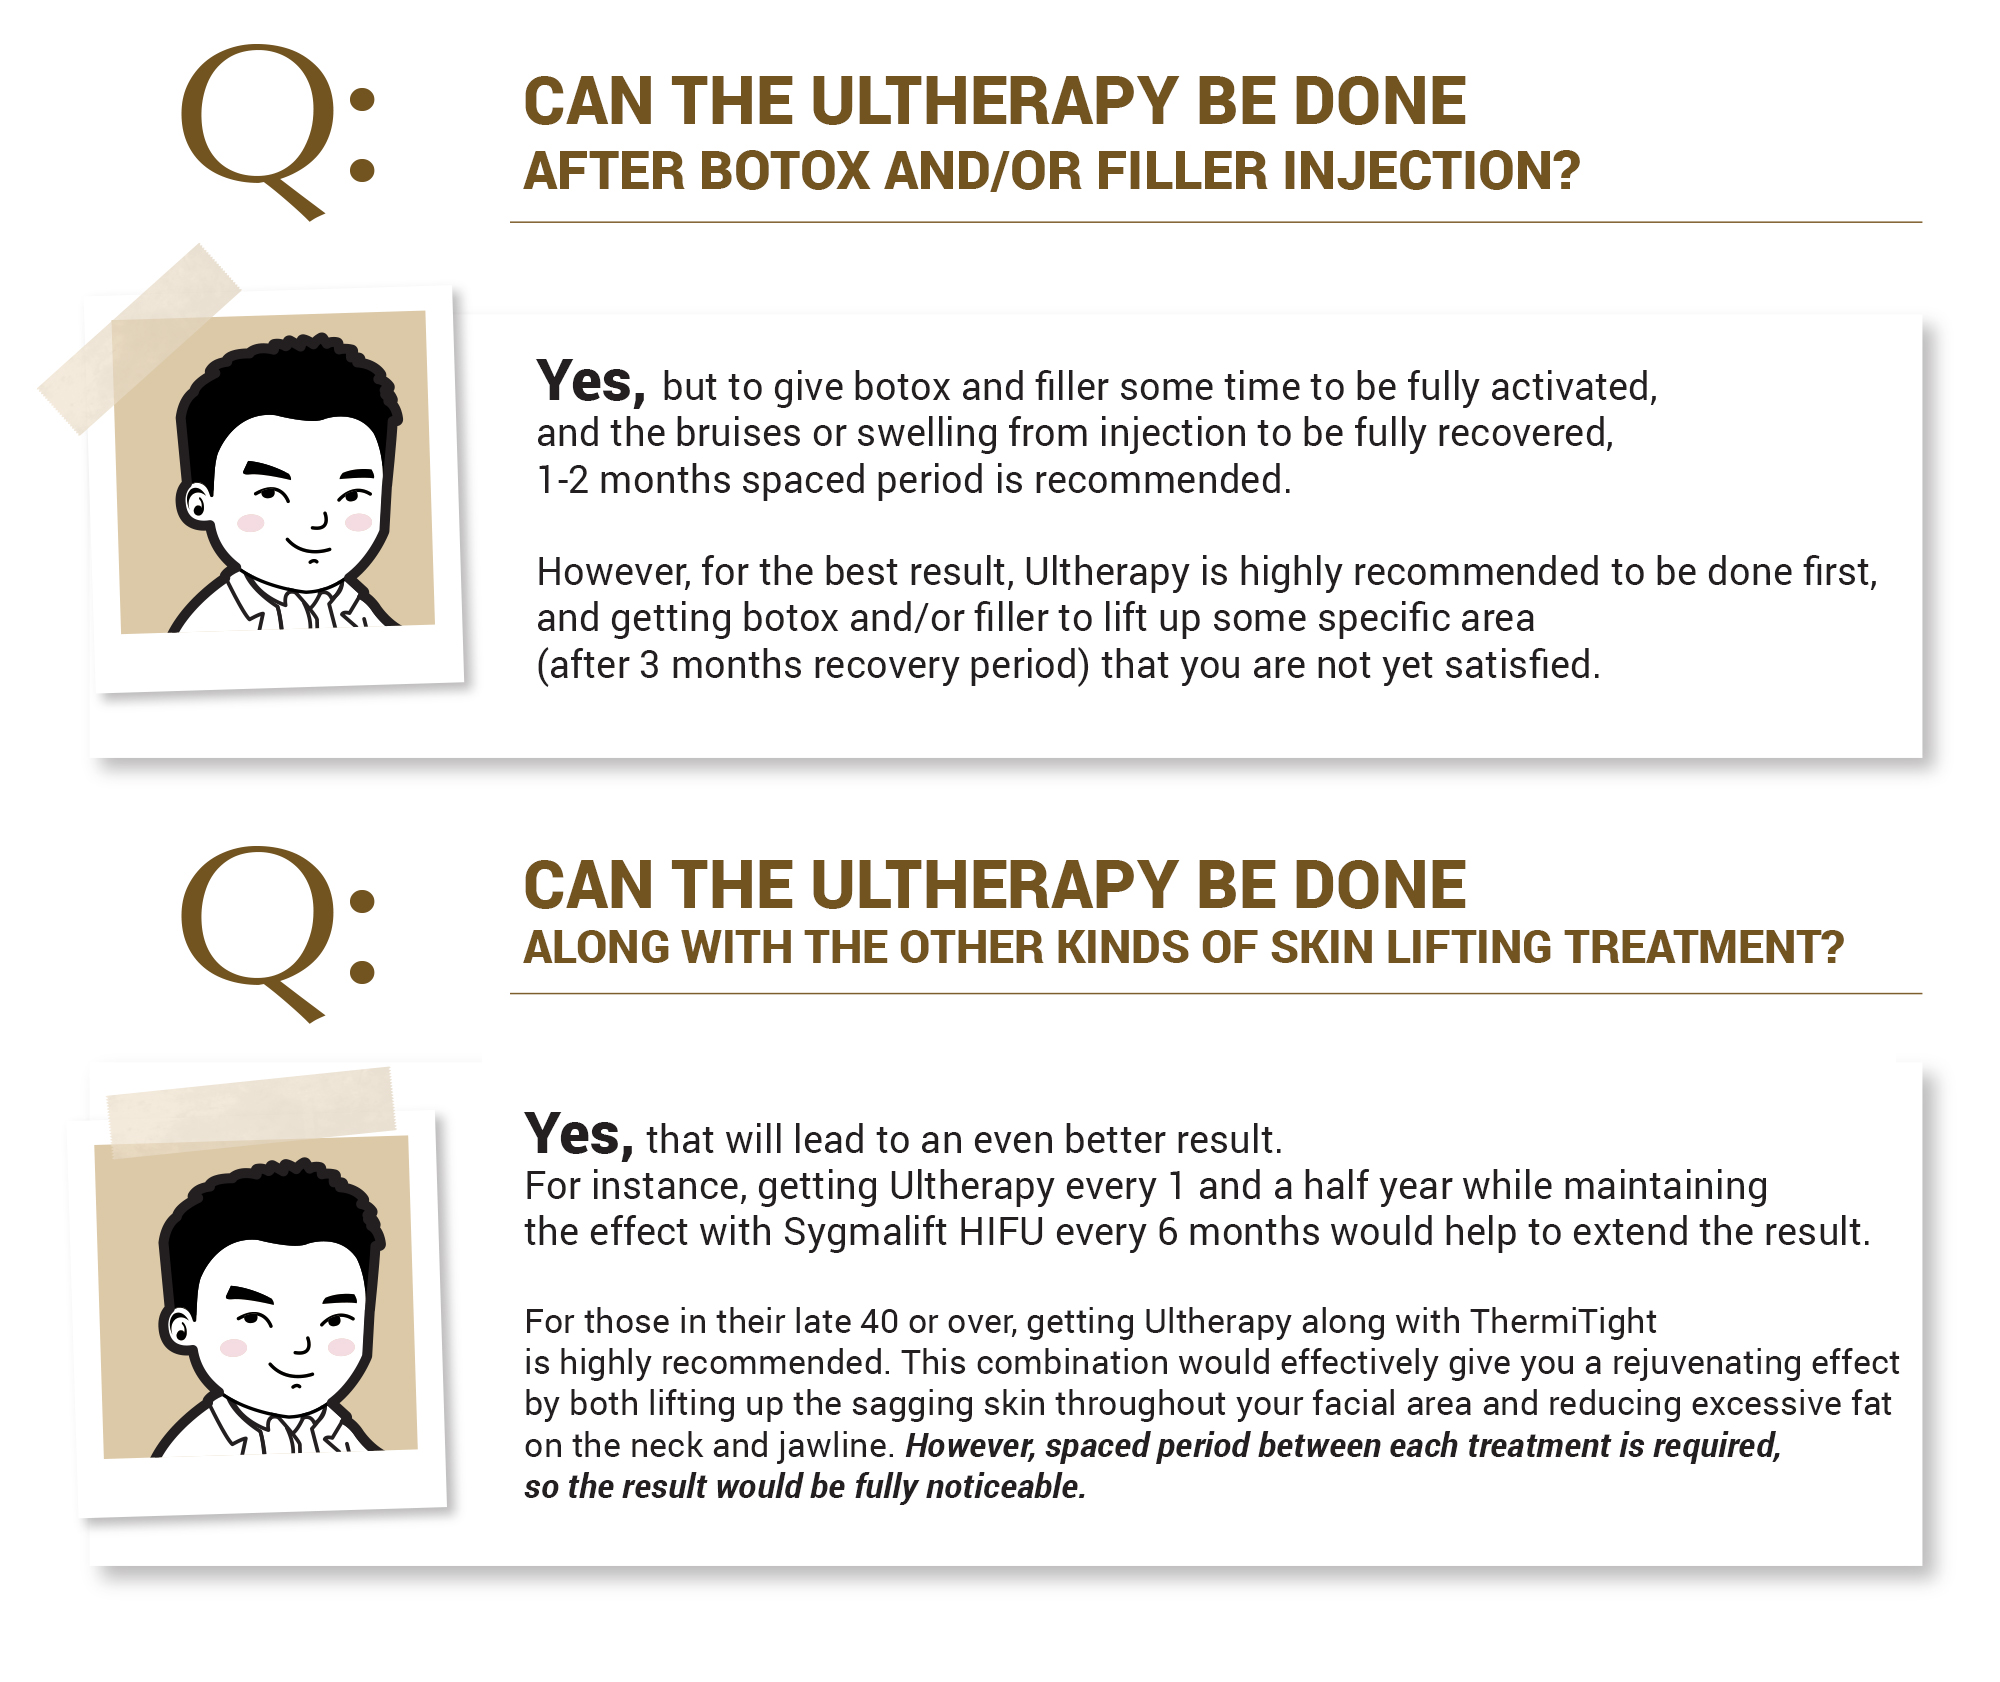 Q&A Ultherapy